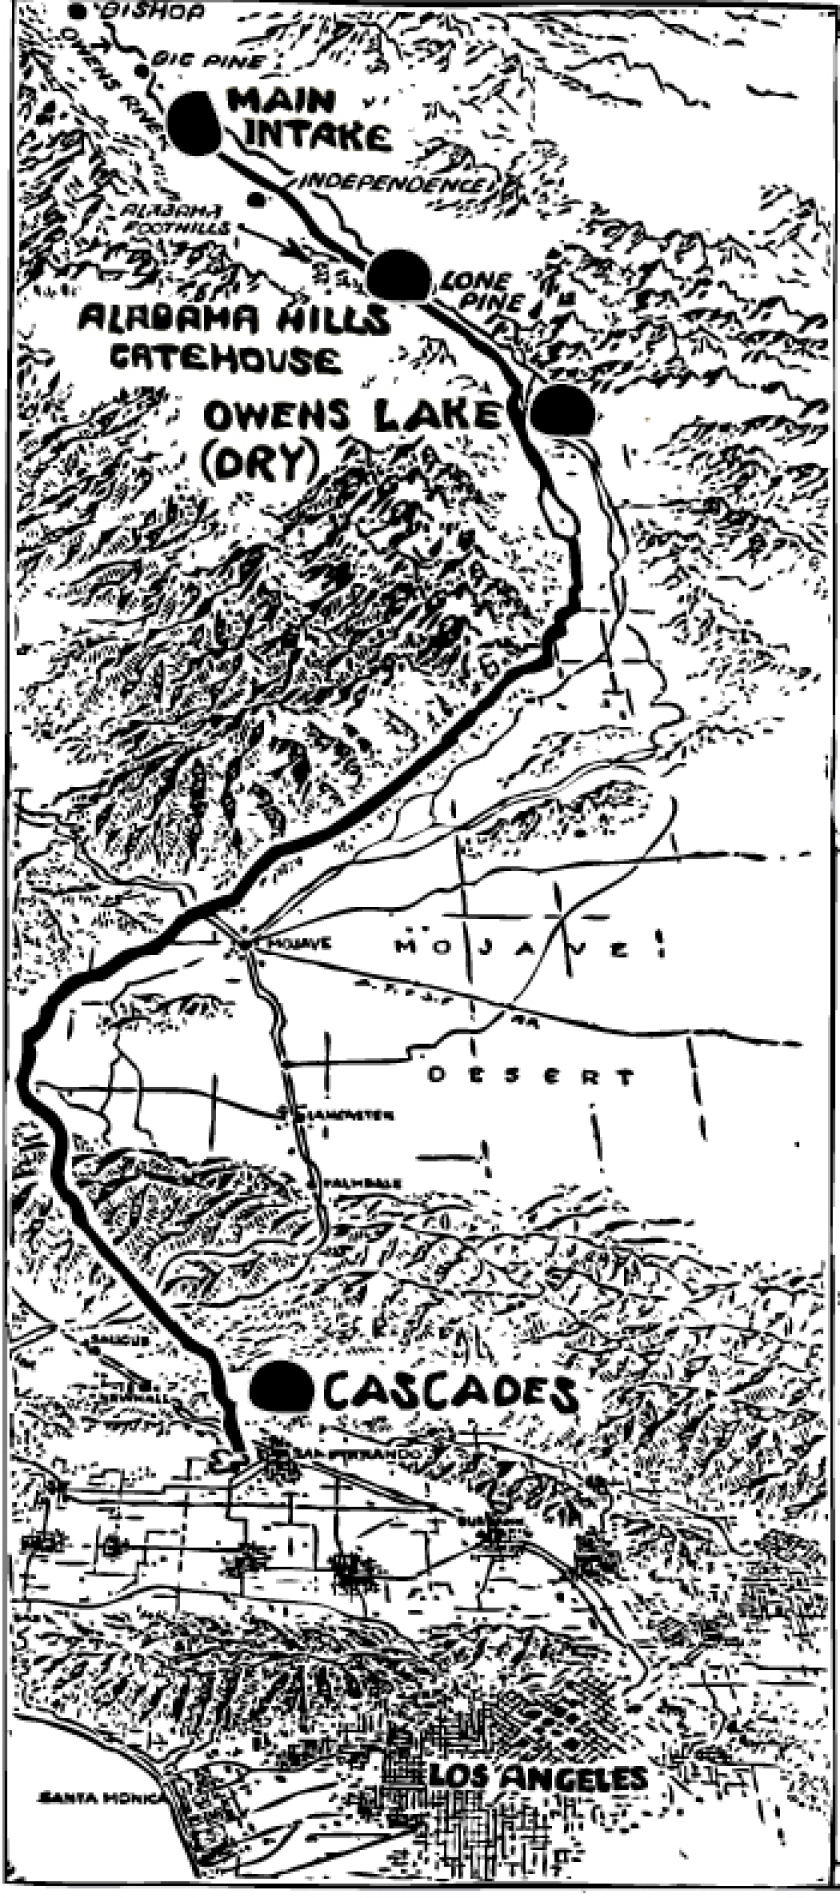 A historic map shows the path of water from the Owens Valley to Los Angeles.